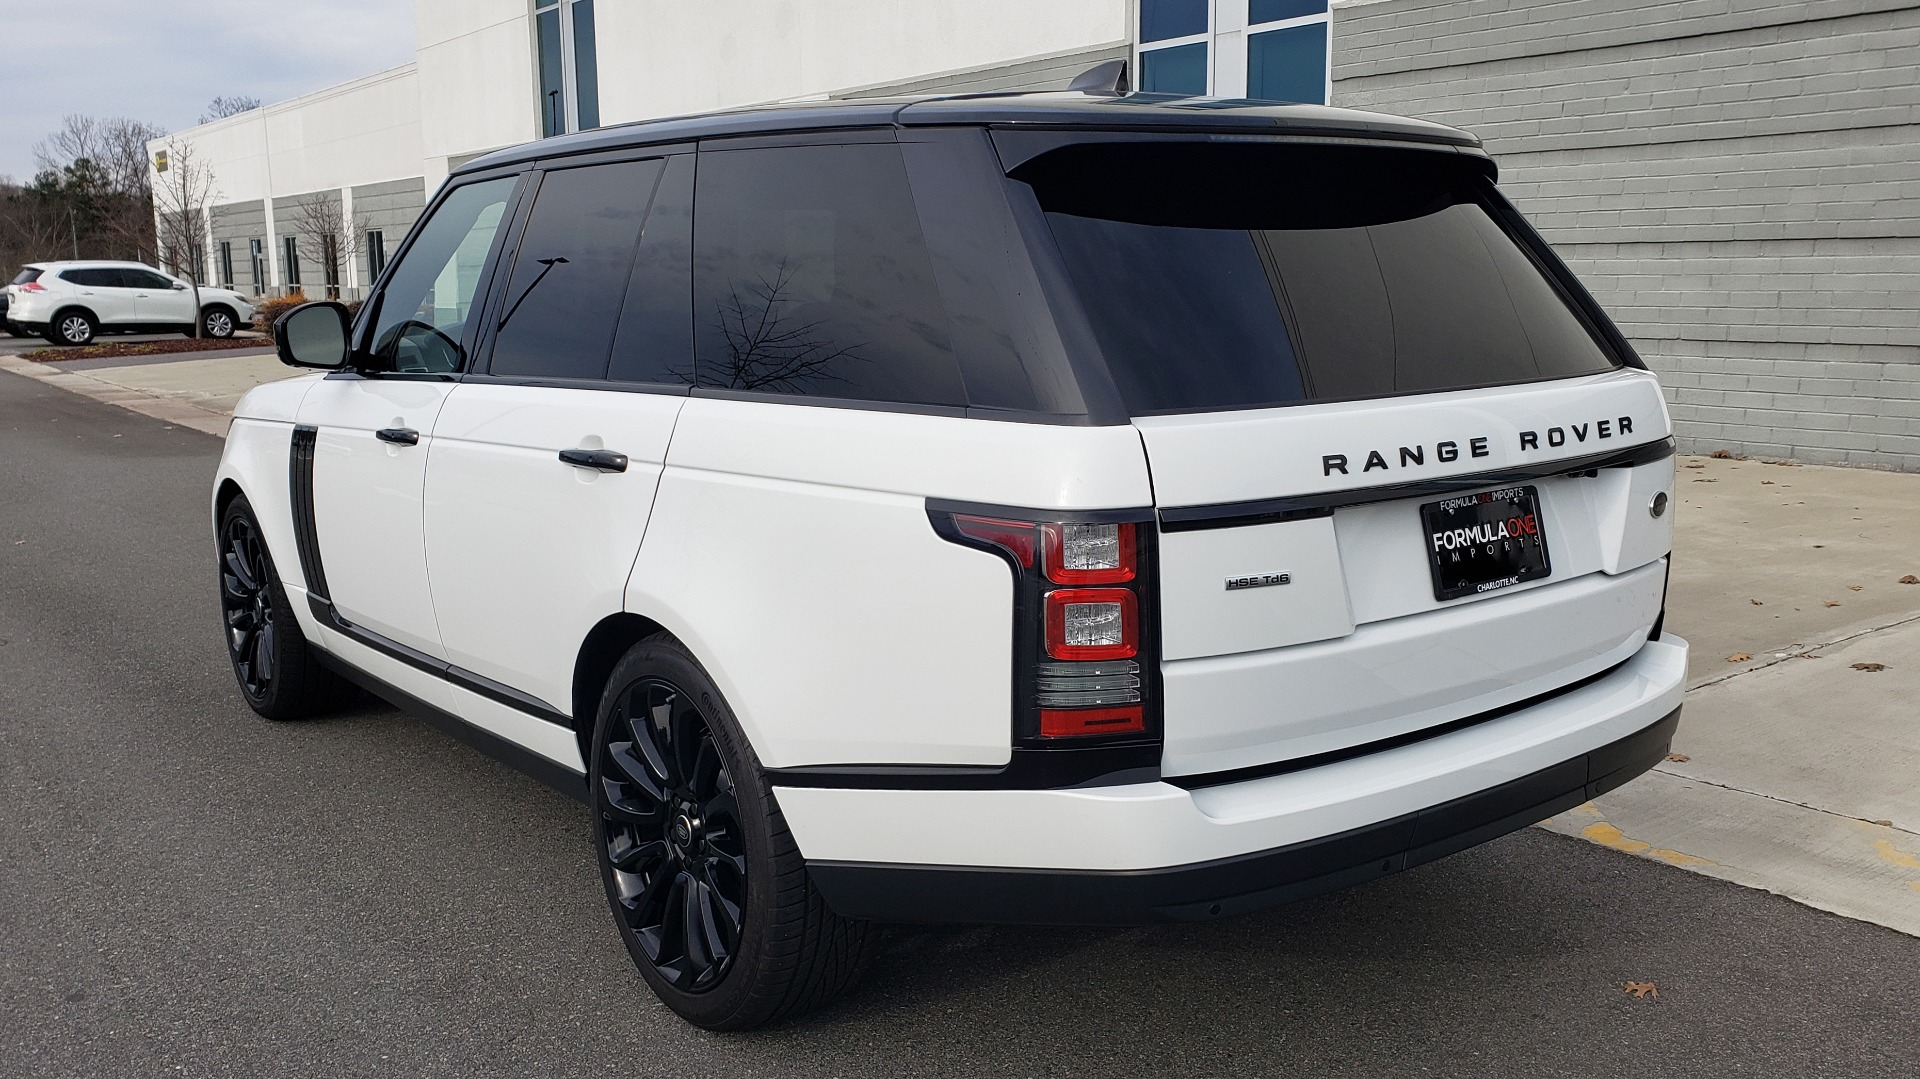 Used 2017 Land Rover RANGE ROVER HSE TD6 DIESEL / 4WD / NAV / MERIDIAN / PANO-ROOF / REARVIEW for sale Sold at Formula Imports in Charlotte NC 28227 3